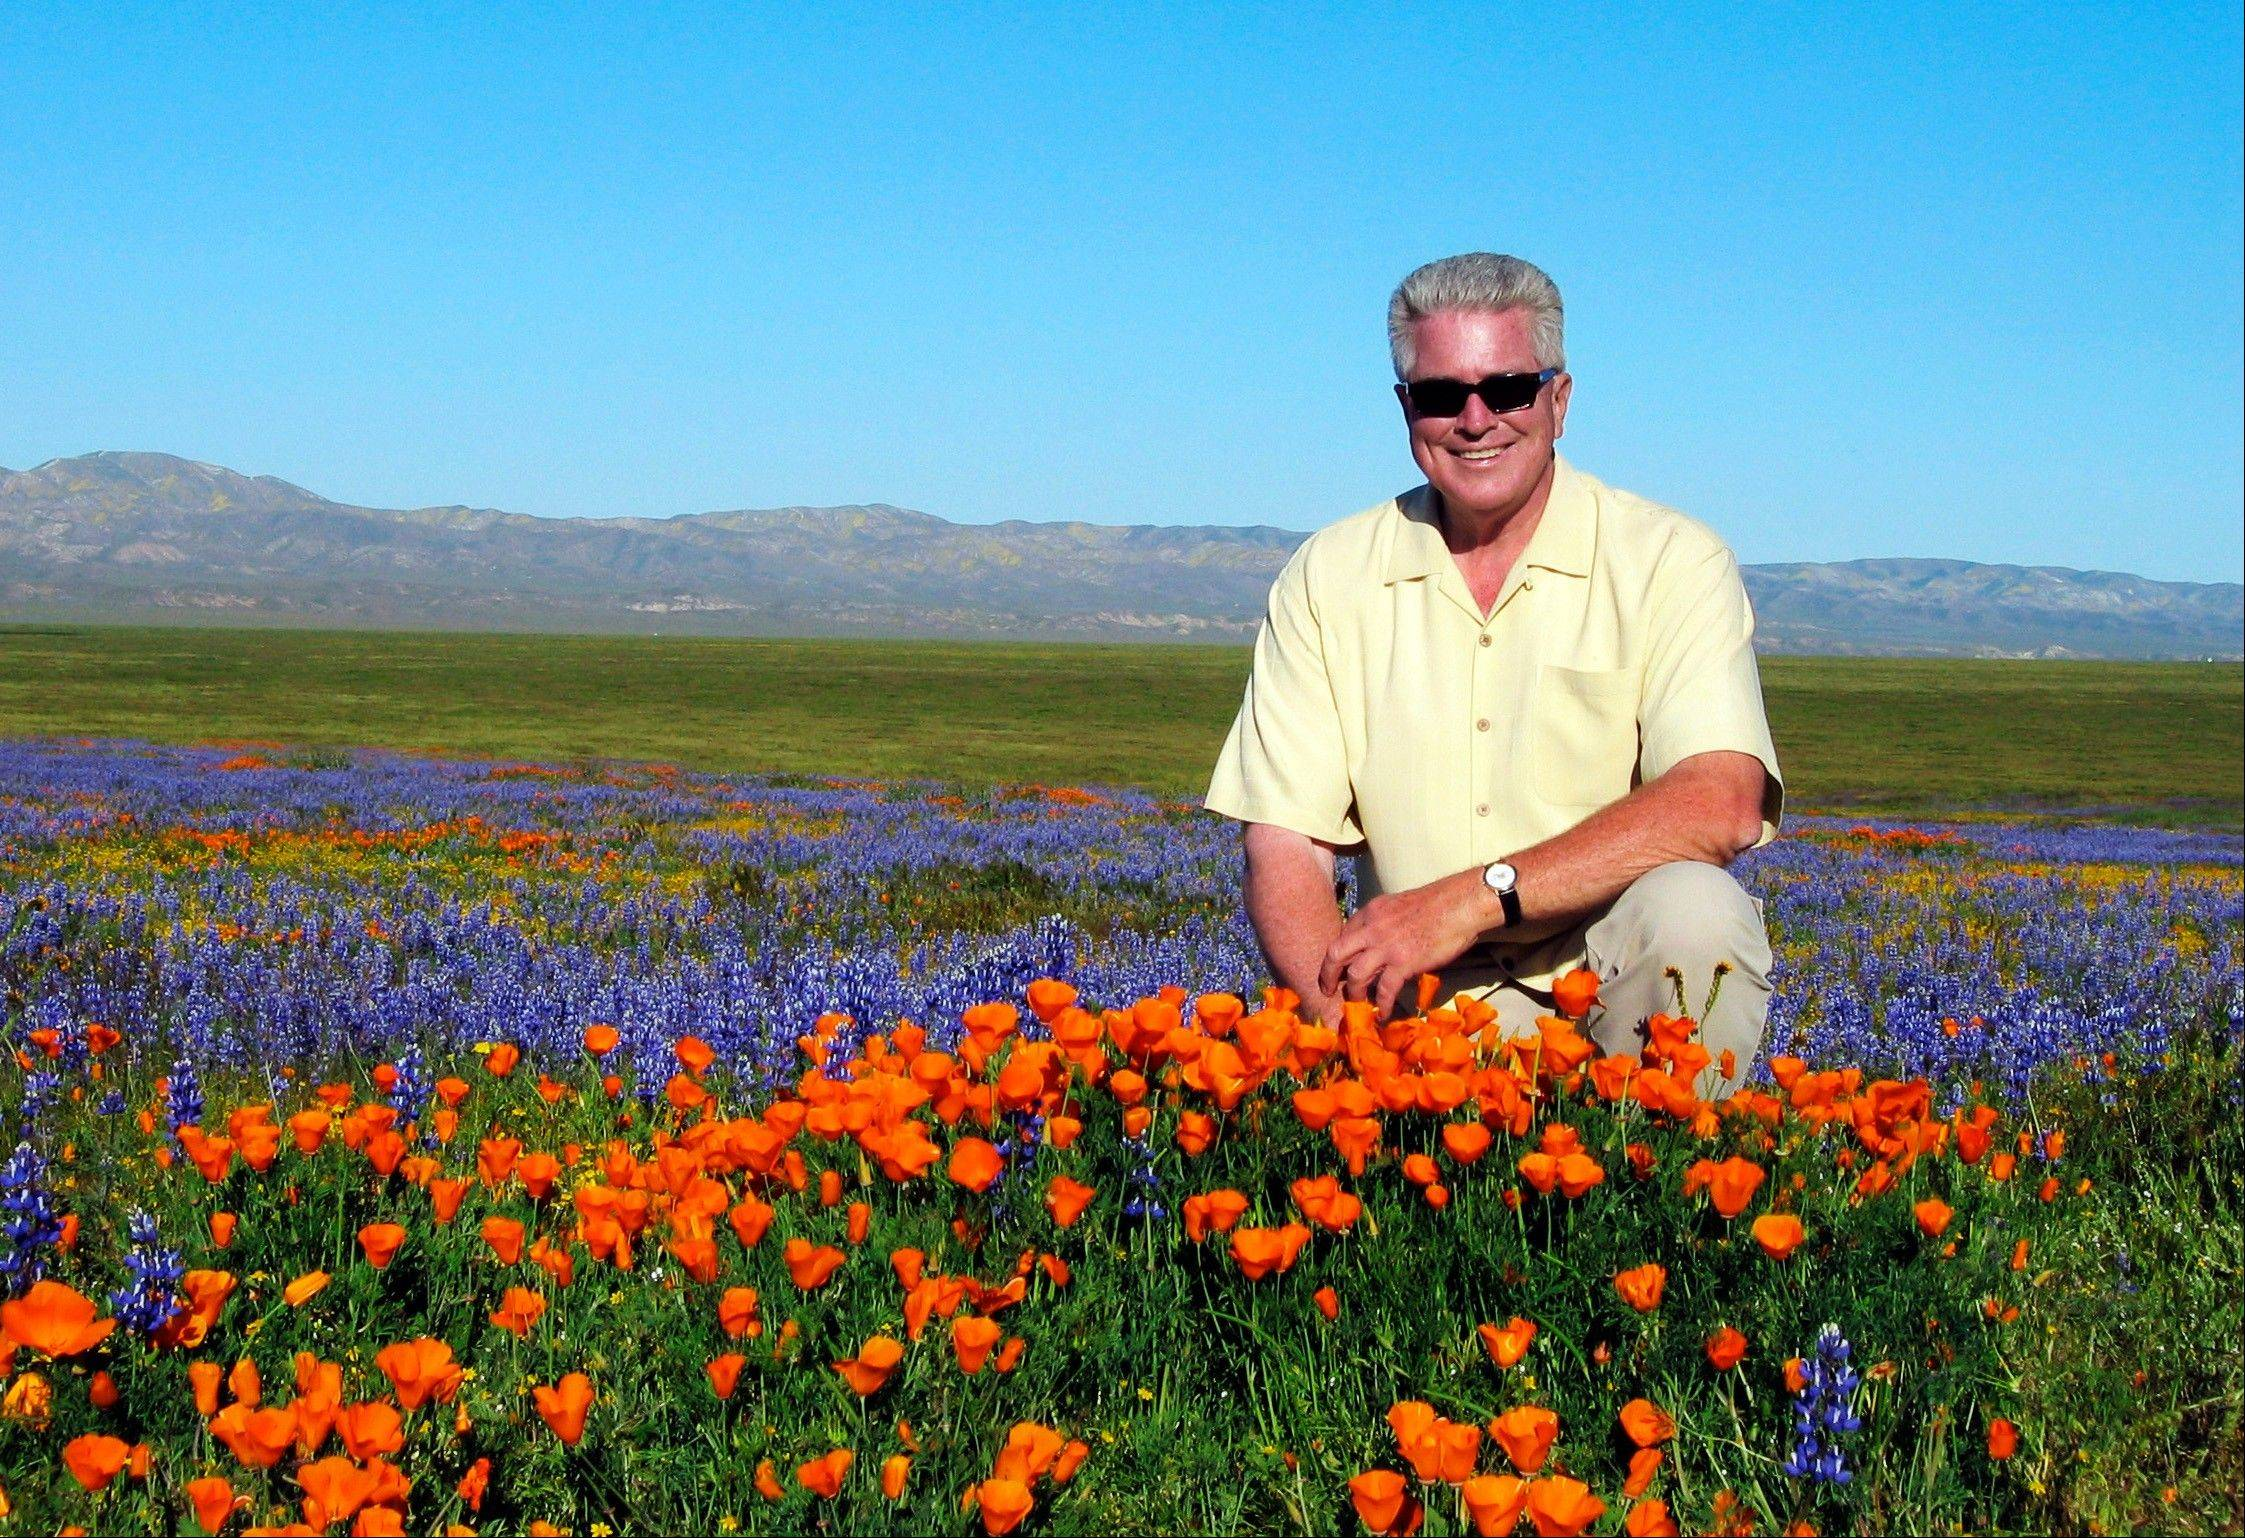 Television host Hull Howser poses for a photo at the Antelope Valley California Poppy Reserve in Lancster, Calif.